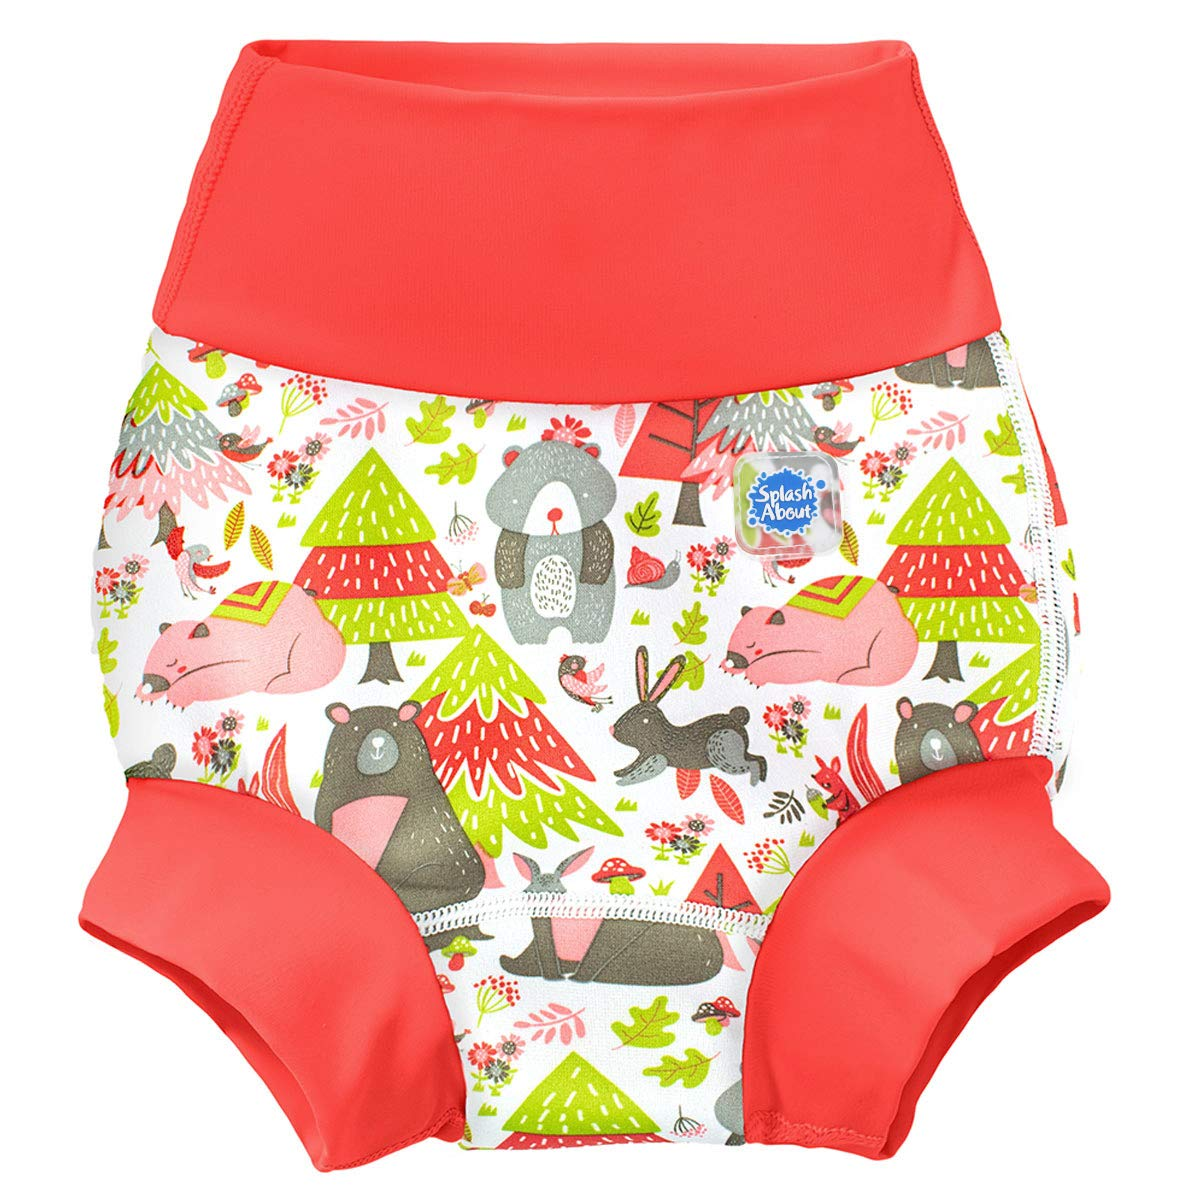 ,12-24 months Splash About Baby Kids New Improved Happy Nappy,Multicoloured Into the Woods